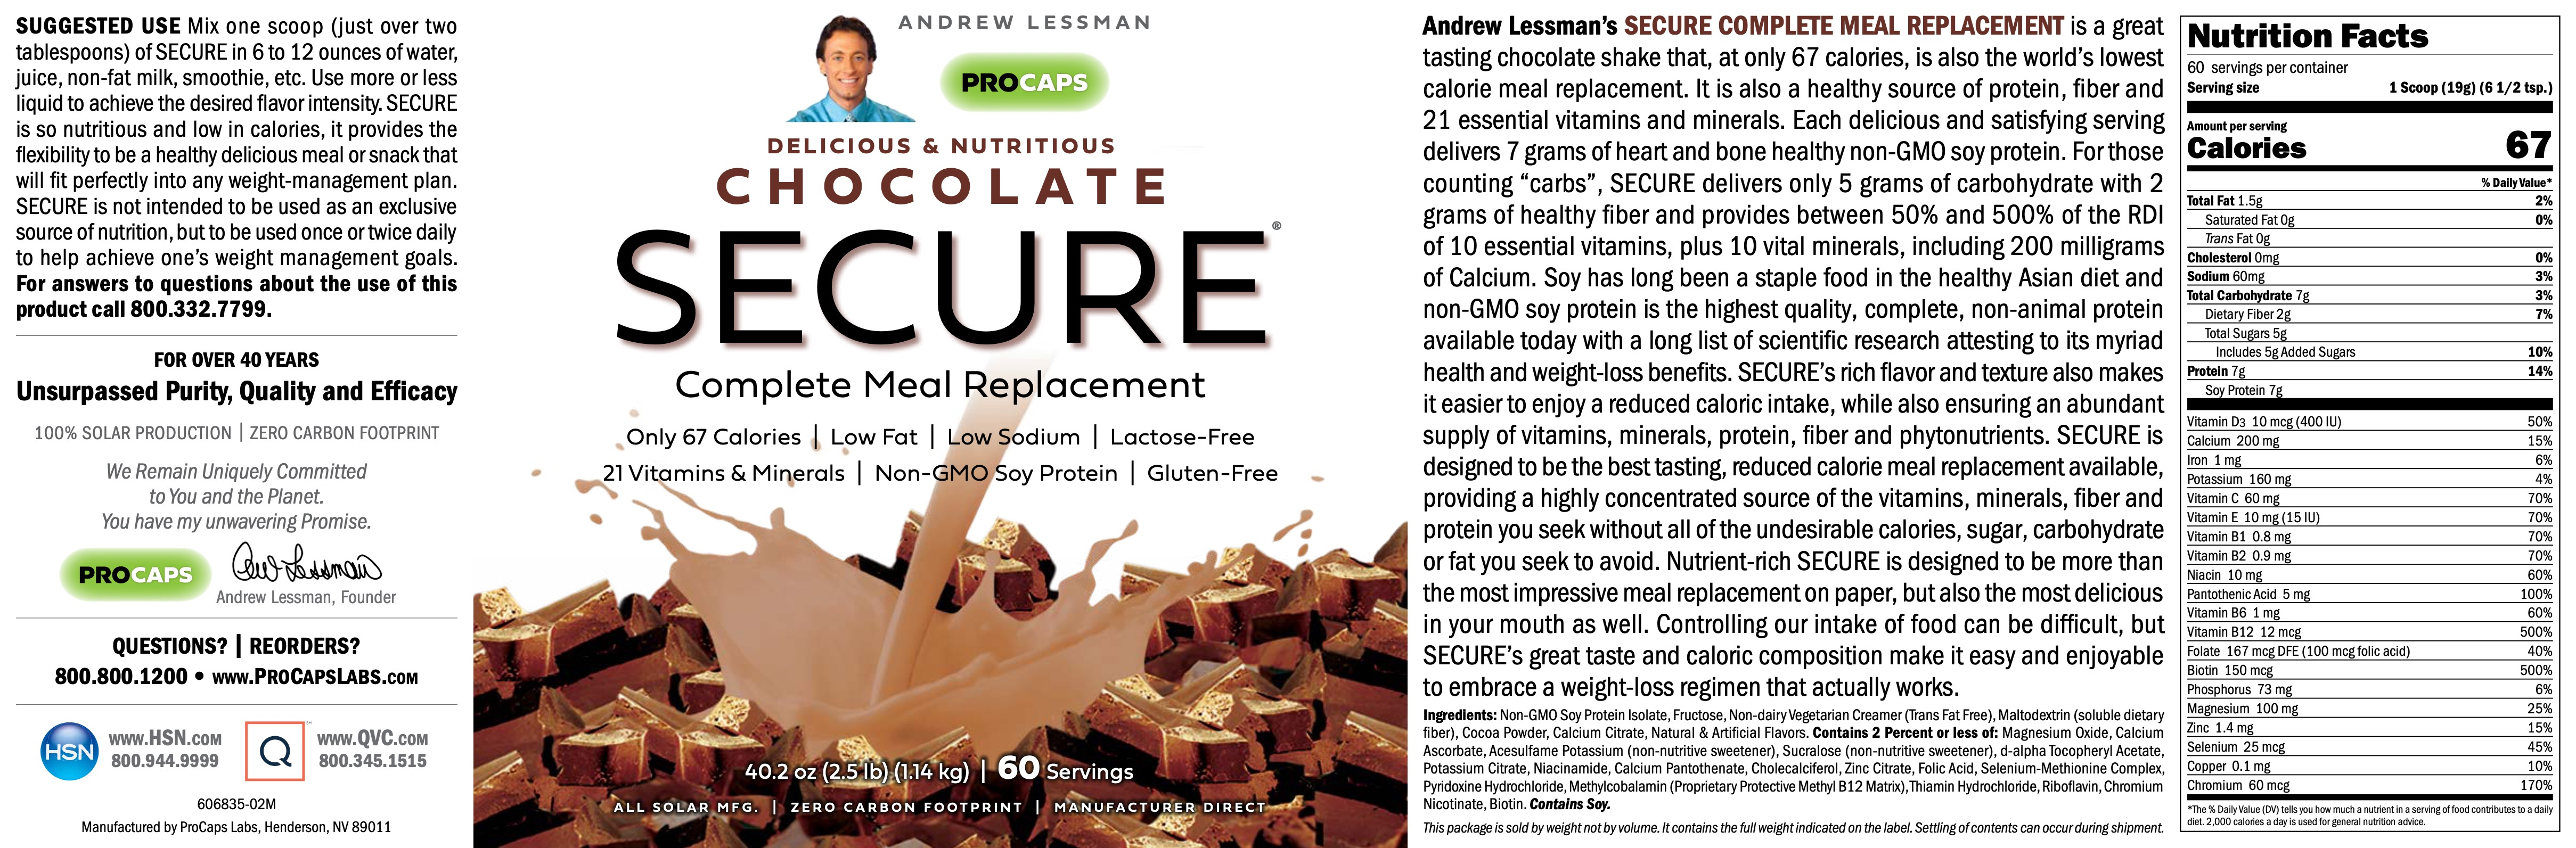 Secure-Soy-Complete-Meal-Replacement-Jan-2020-TS-Weight-Management